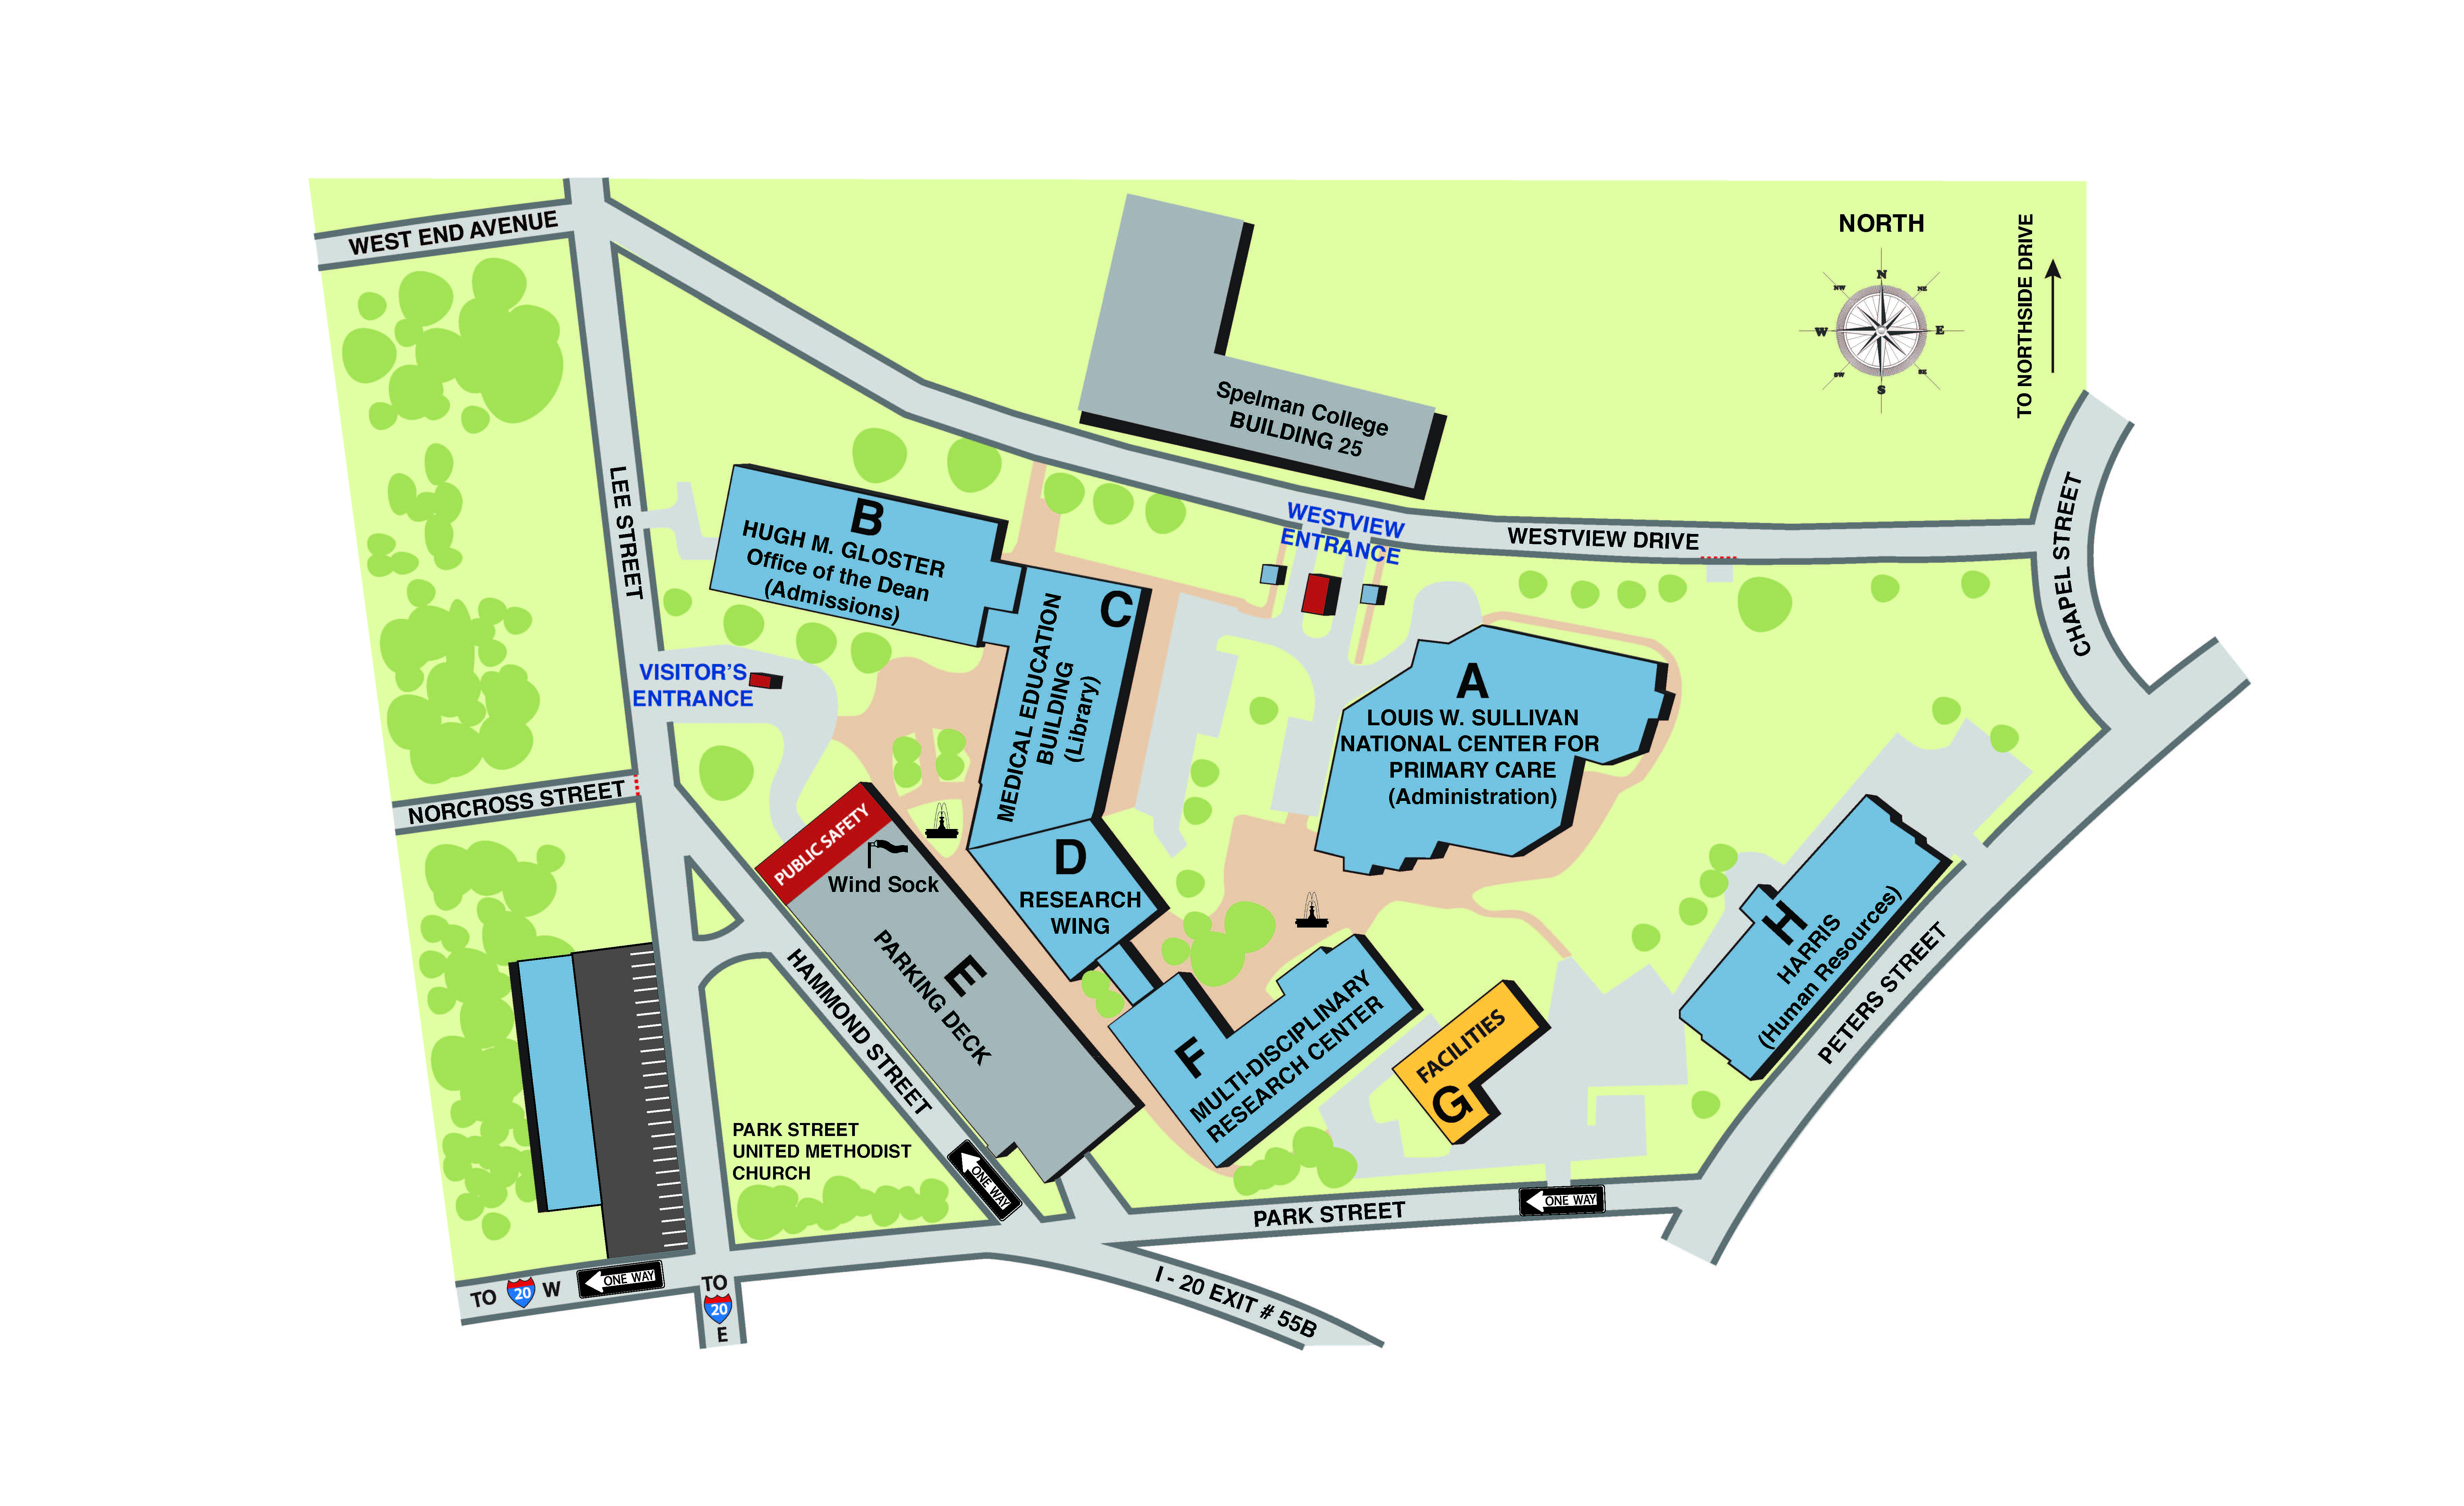 Map of Morehouse School of Medicine